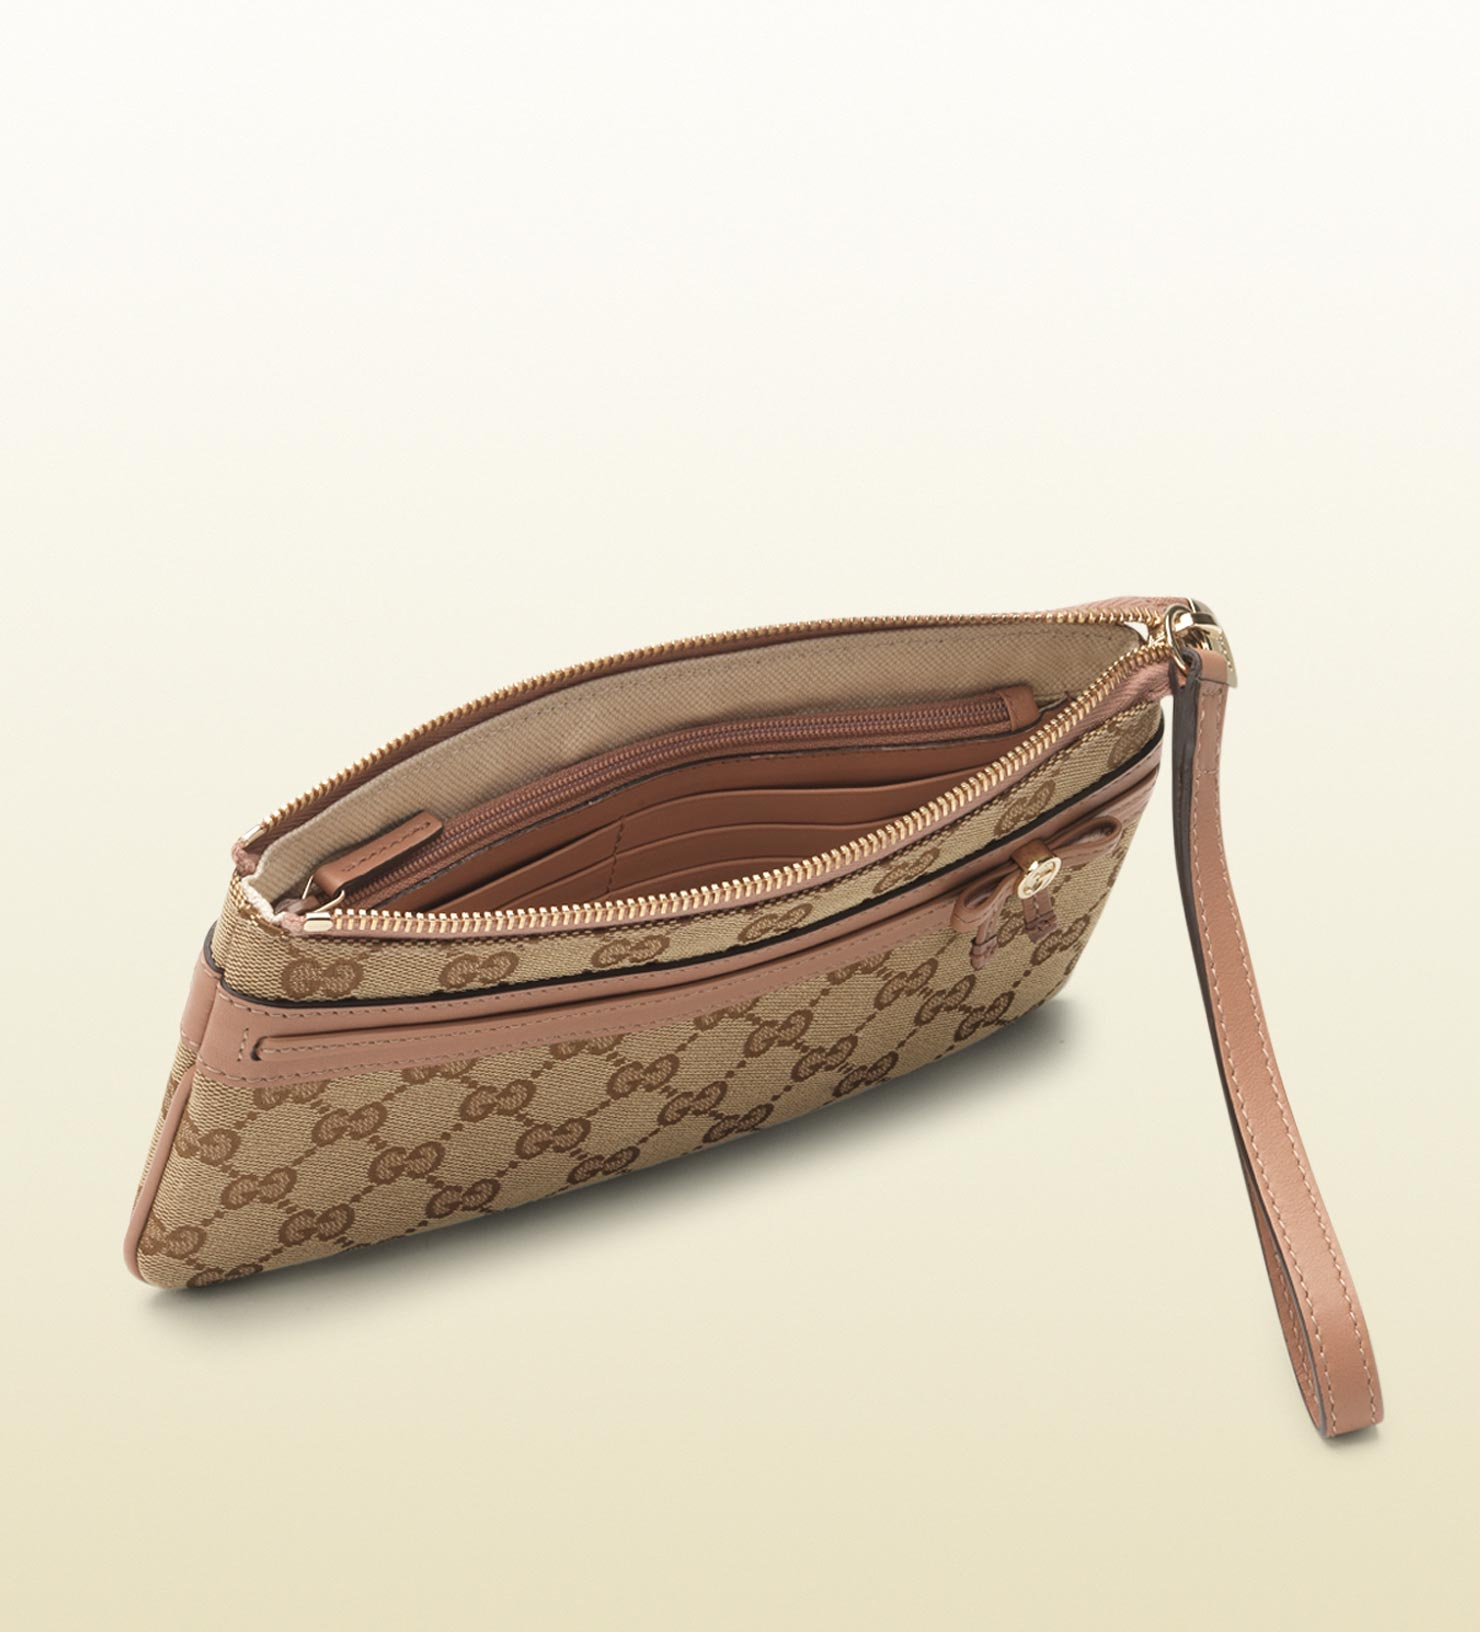 8623b843a1d15a Gucci Bow and Interlocking G Wristlet Wallet in Brown - Lyst